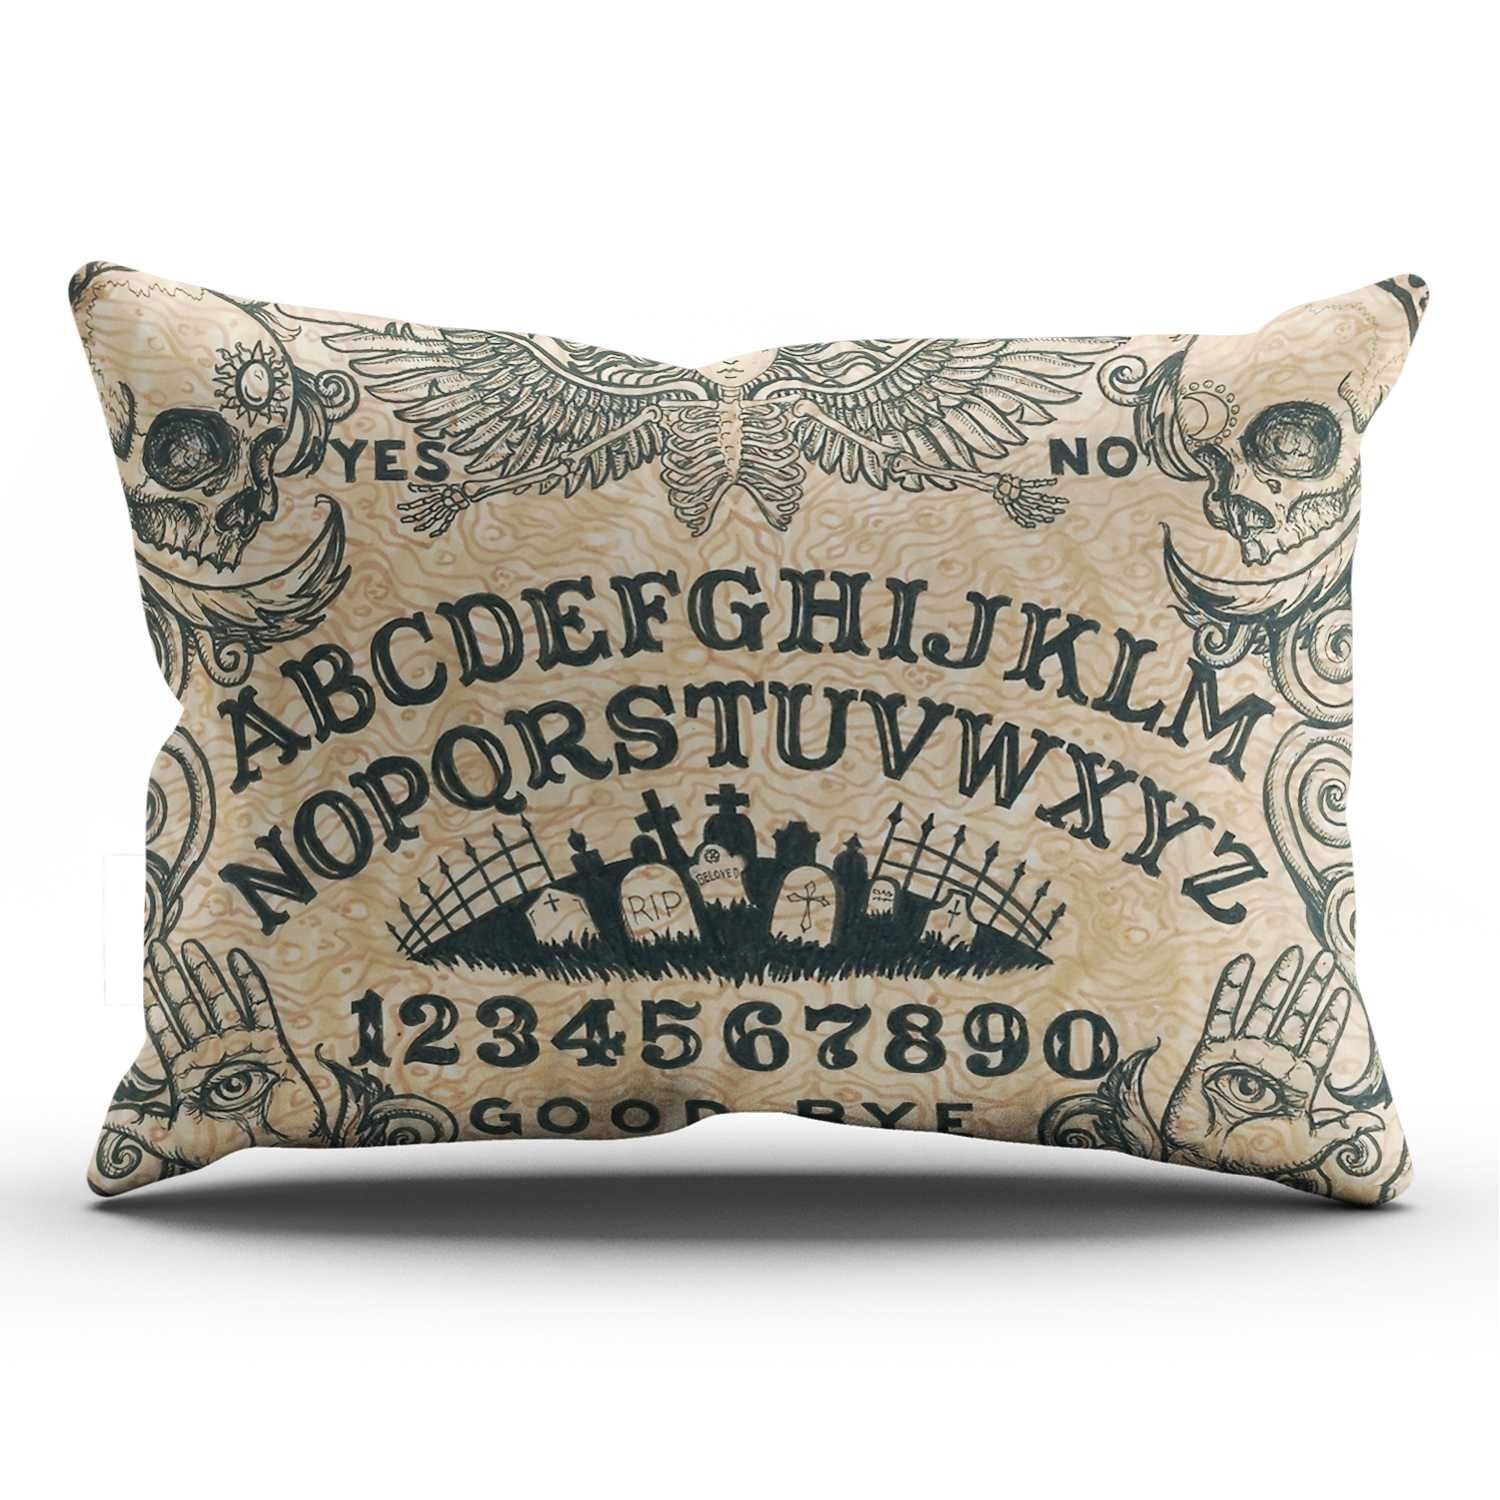 KEIBIKE Personalized Ouija Board Horror Movie King Rectangle Decorative Pillowcases Decor Zippered Throw Pillow Covers Cases 20x36 Inches One Sided